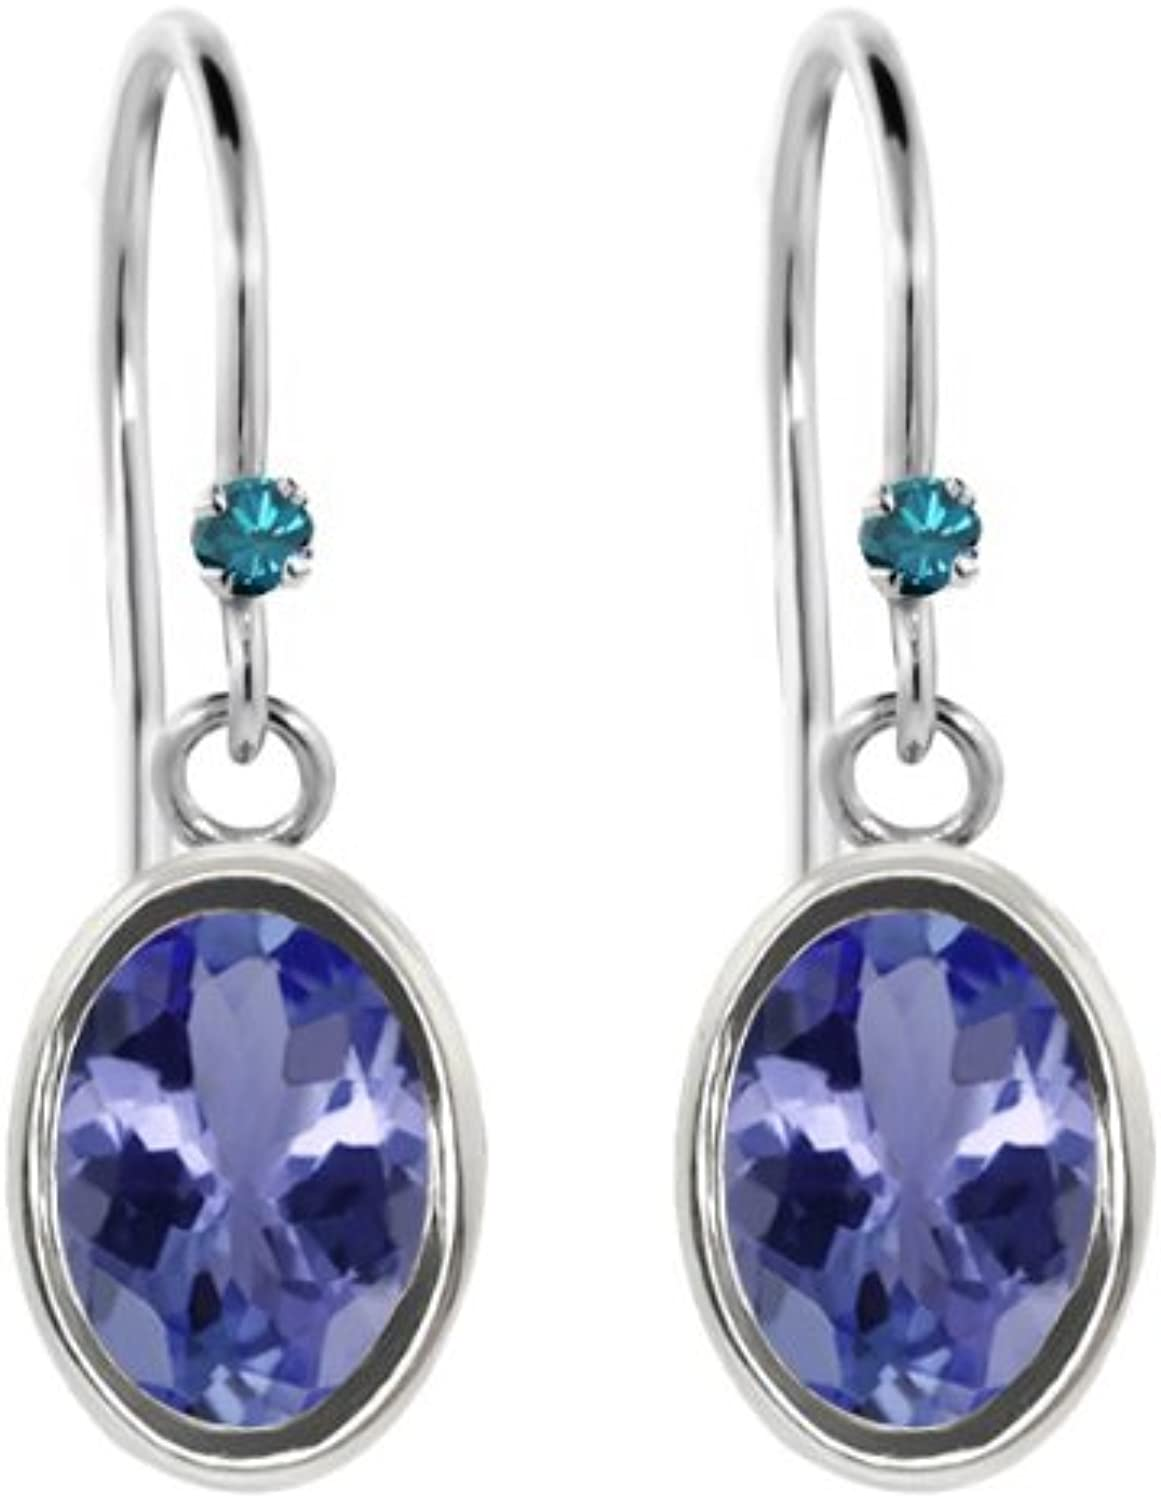 1.52 Ct Oval bluee Tanzanite bluee Diamond 925 Sterling Silver Earrings